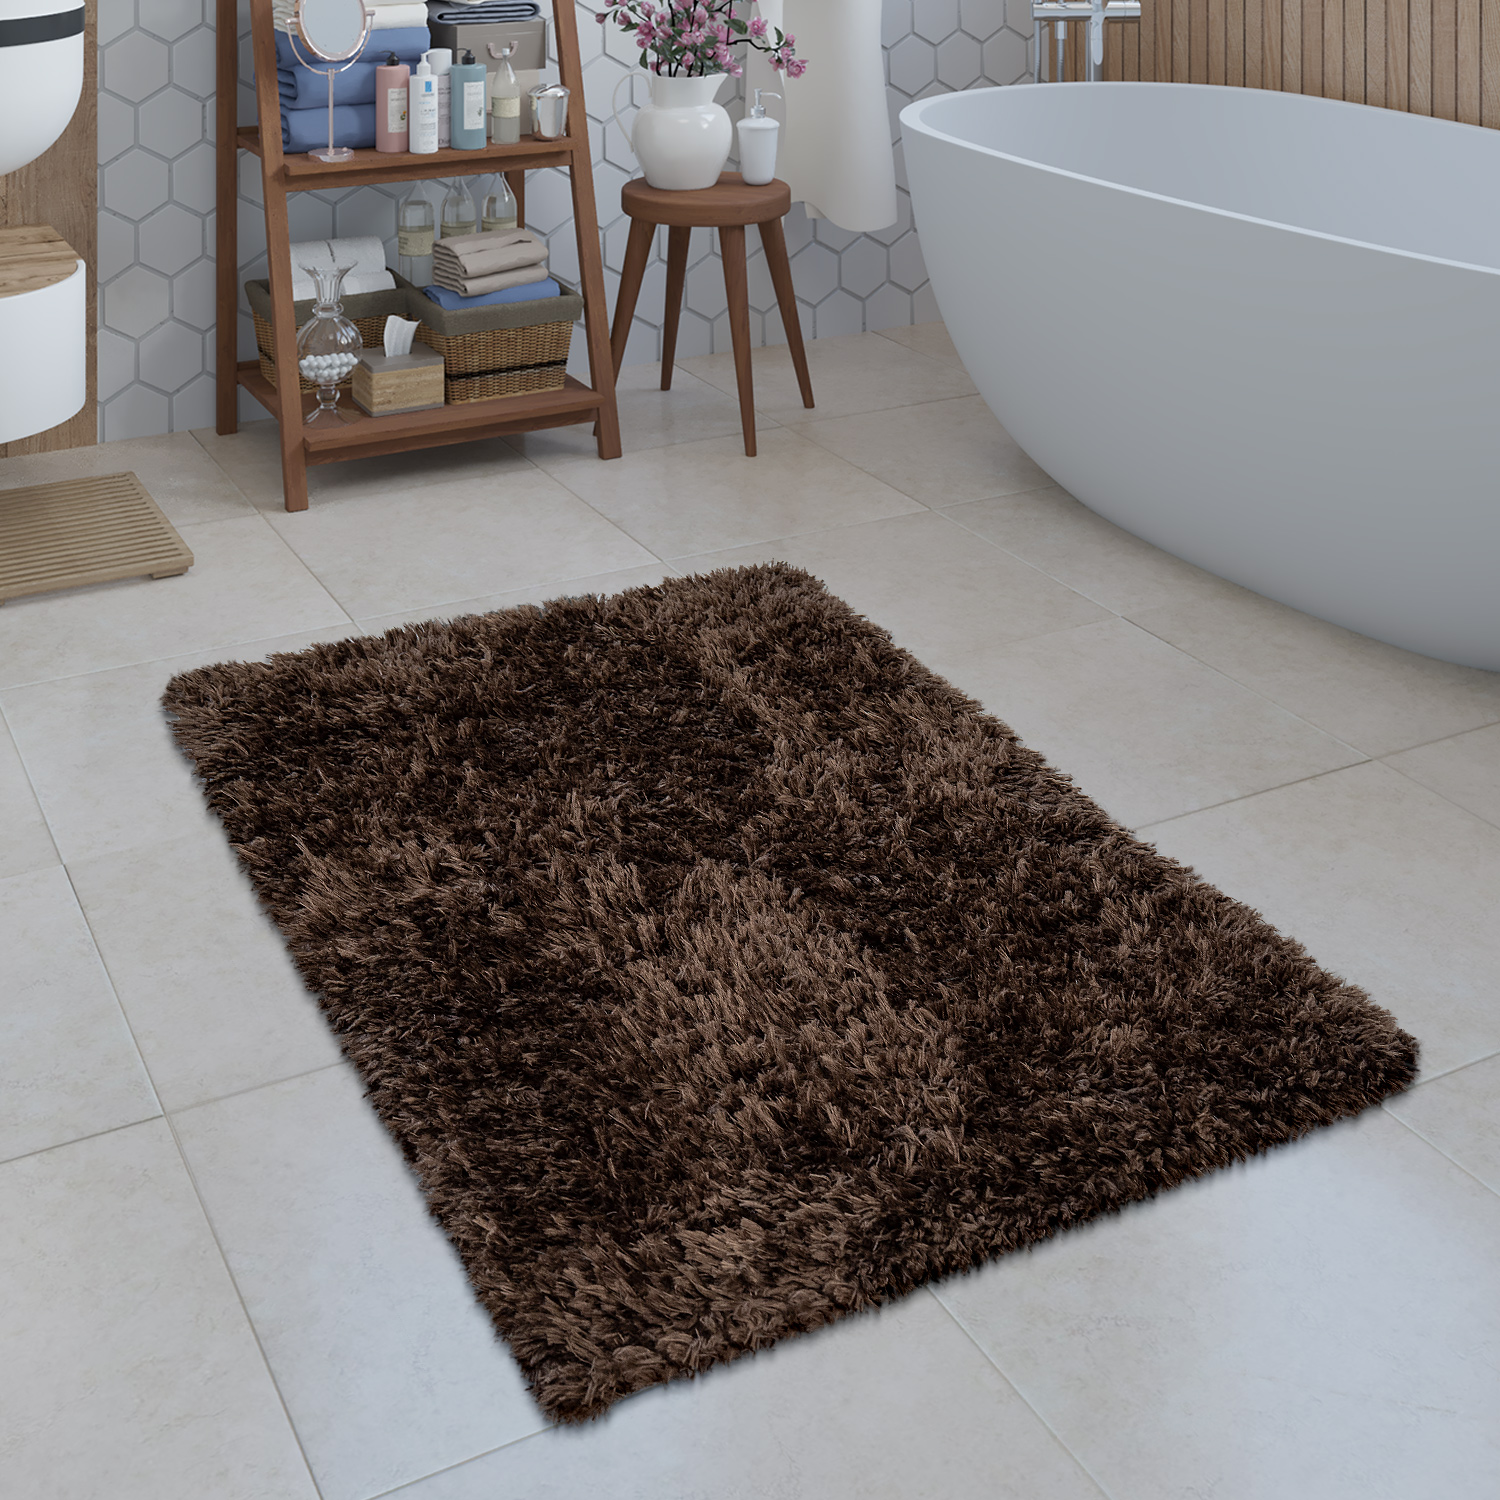 Baño Marron Alfombrilla De Baño Shaggy Monocolor En Marrón